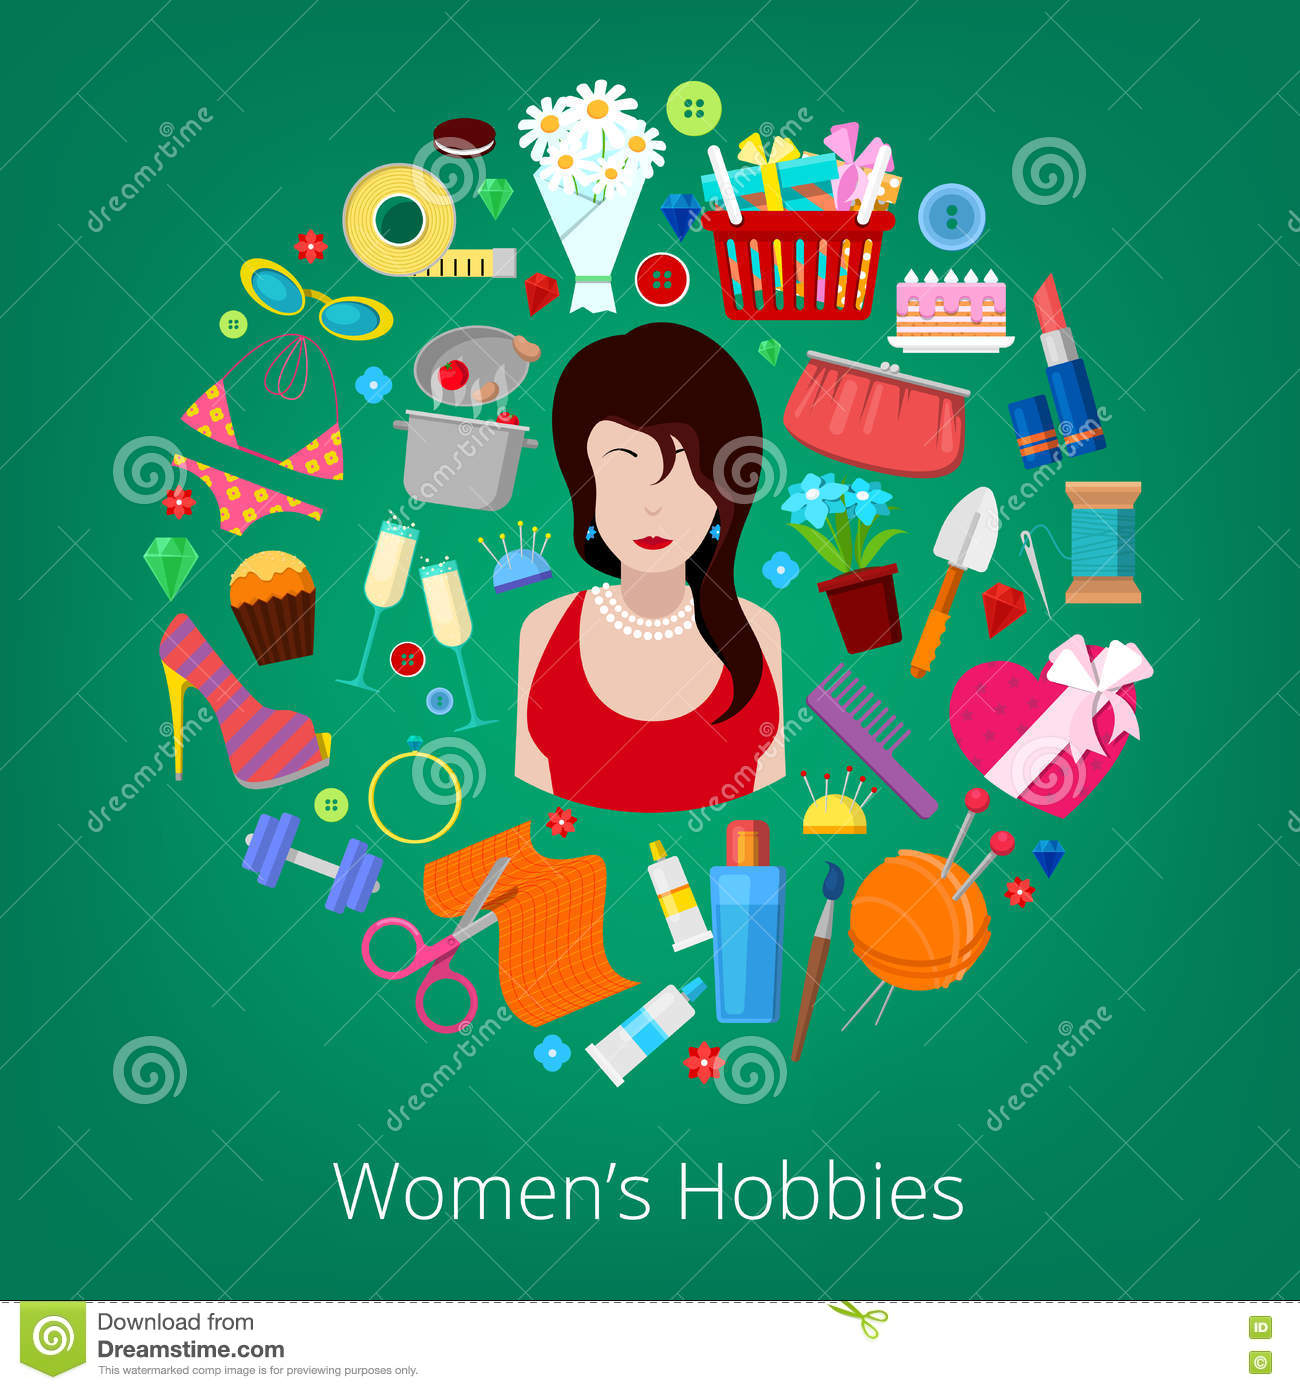 Woman Hobby Elements Set with Flowers, Cooking, Cosmetics and Fashion Elements